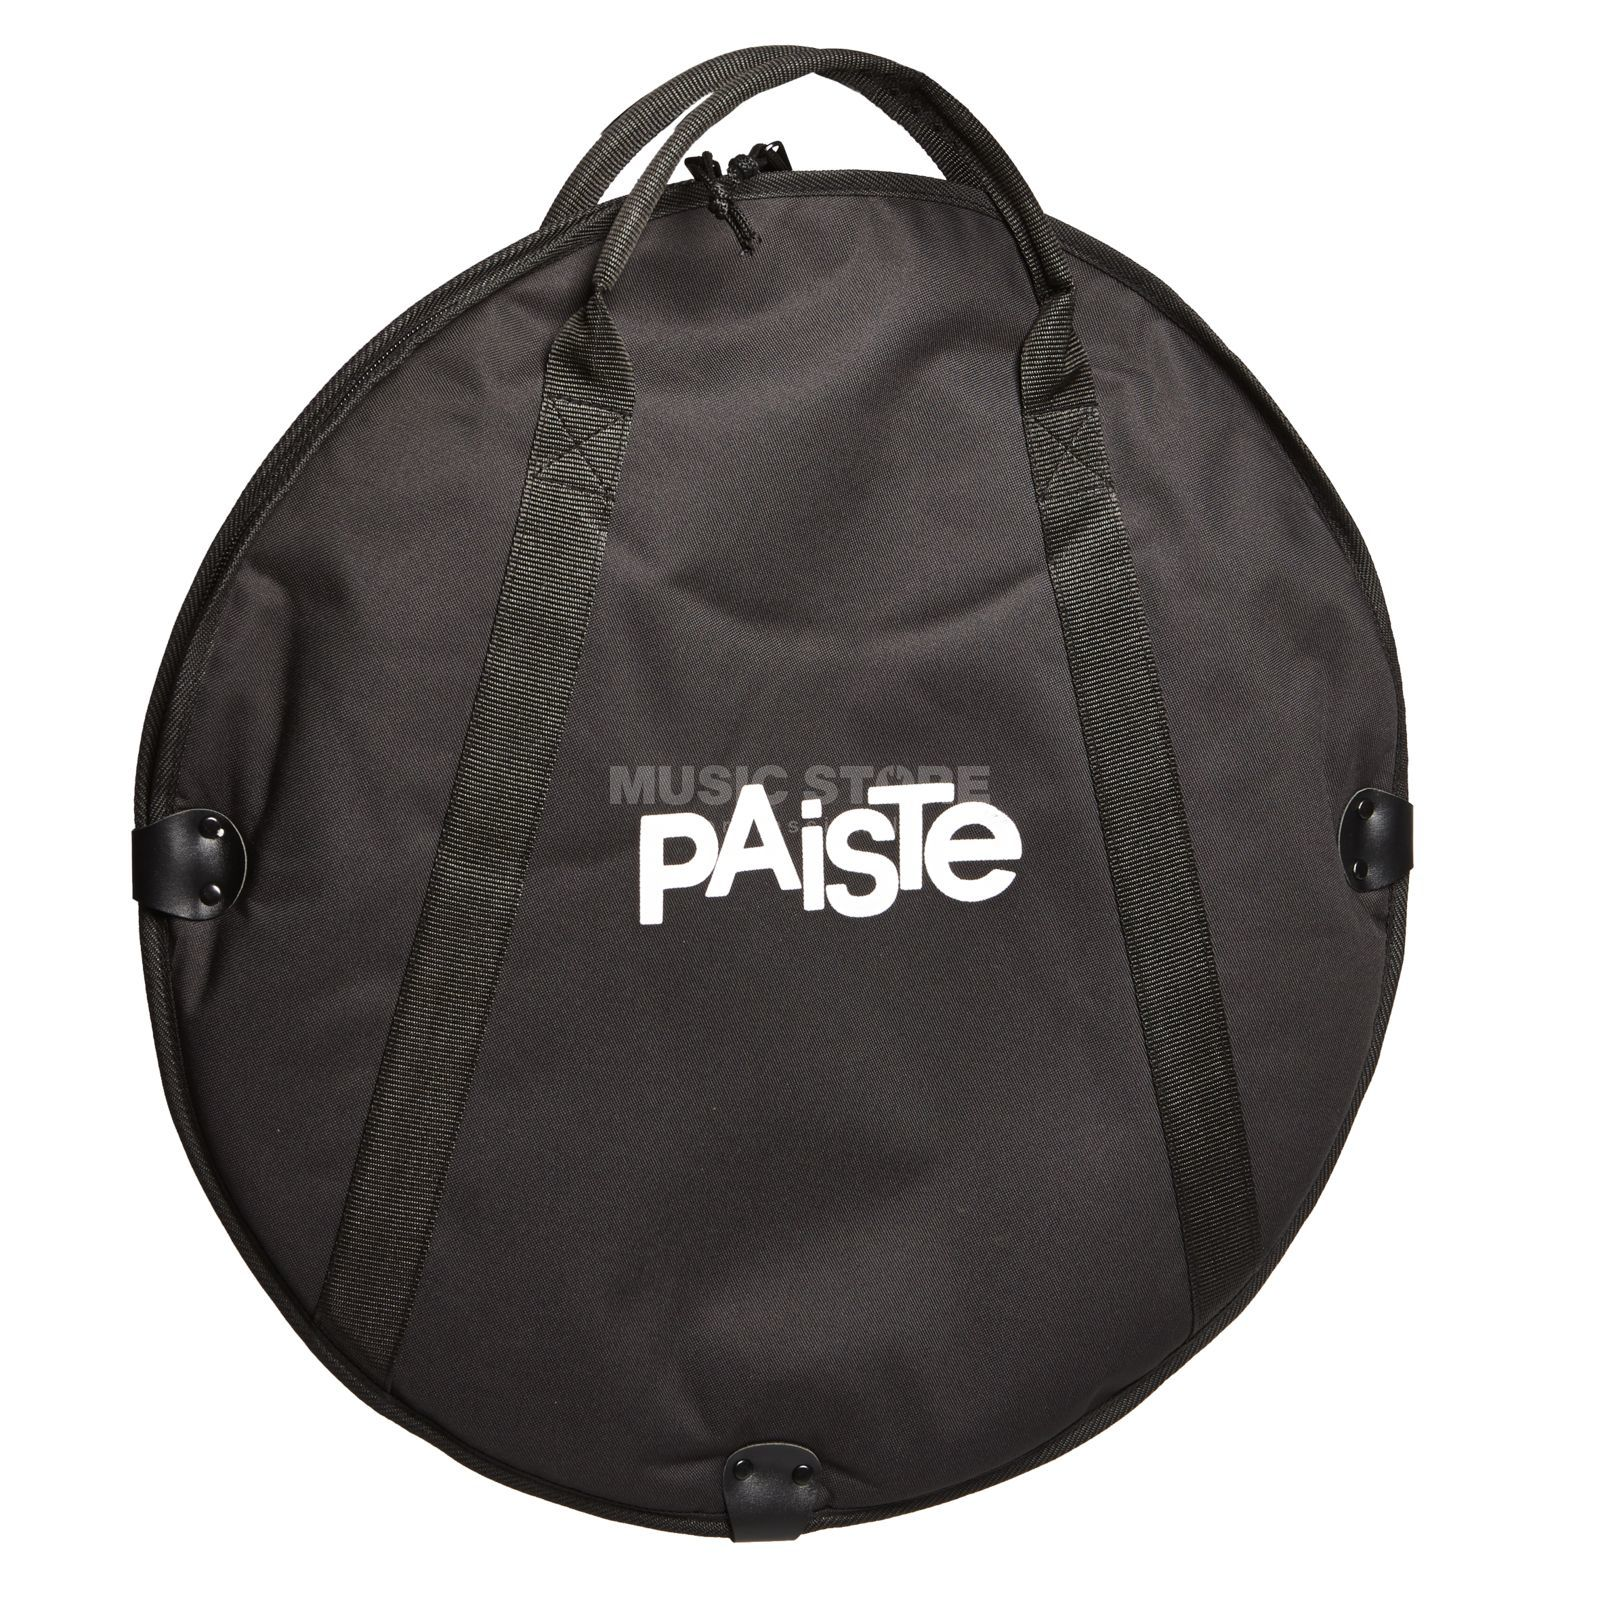 "Paiste Cymbal Bag 20"", Standard Product Image"